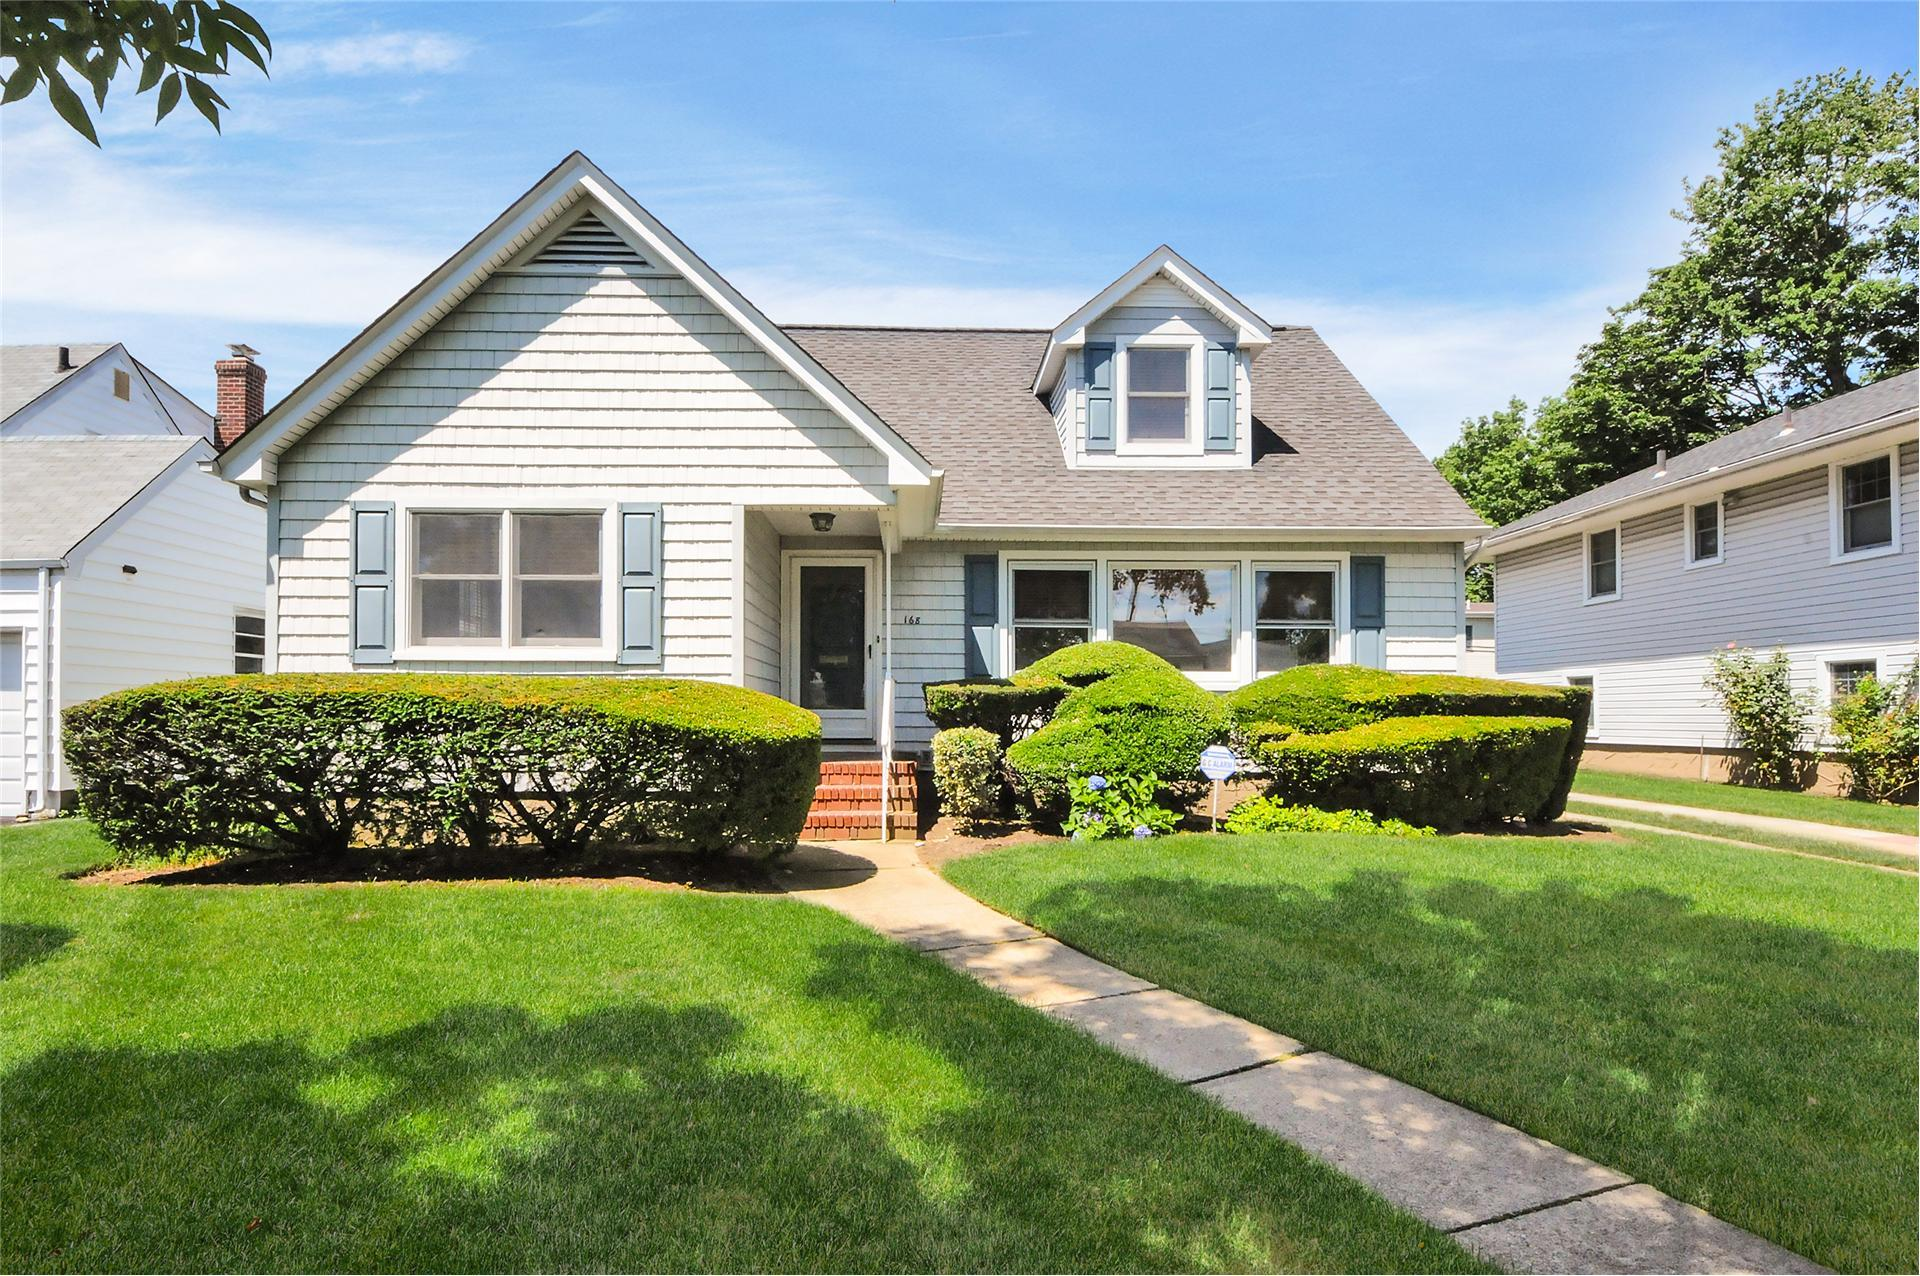 168 Weyford Ter, Garden City, NY 11530 - Estimate and Home Details ...